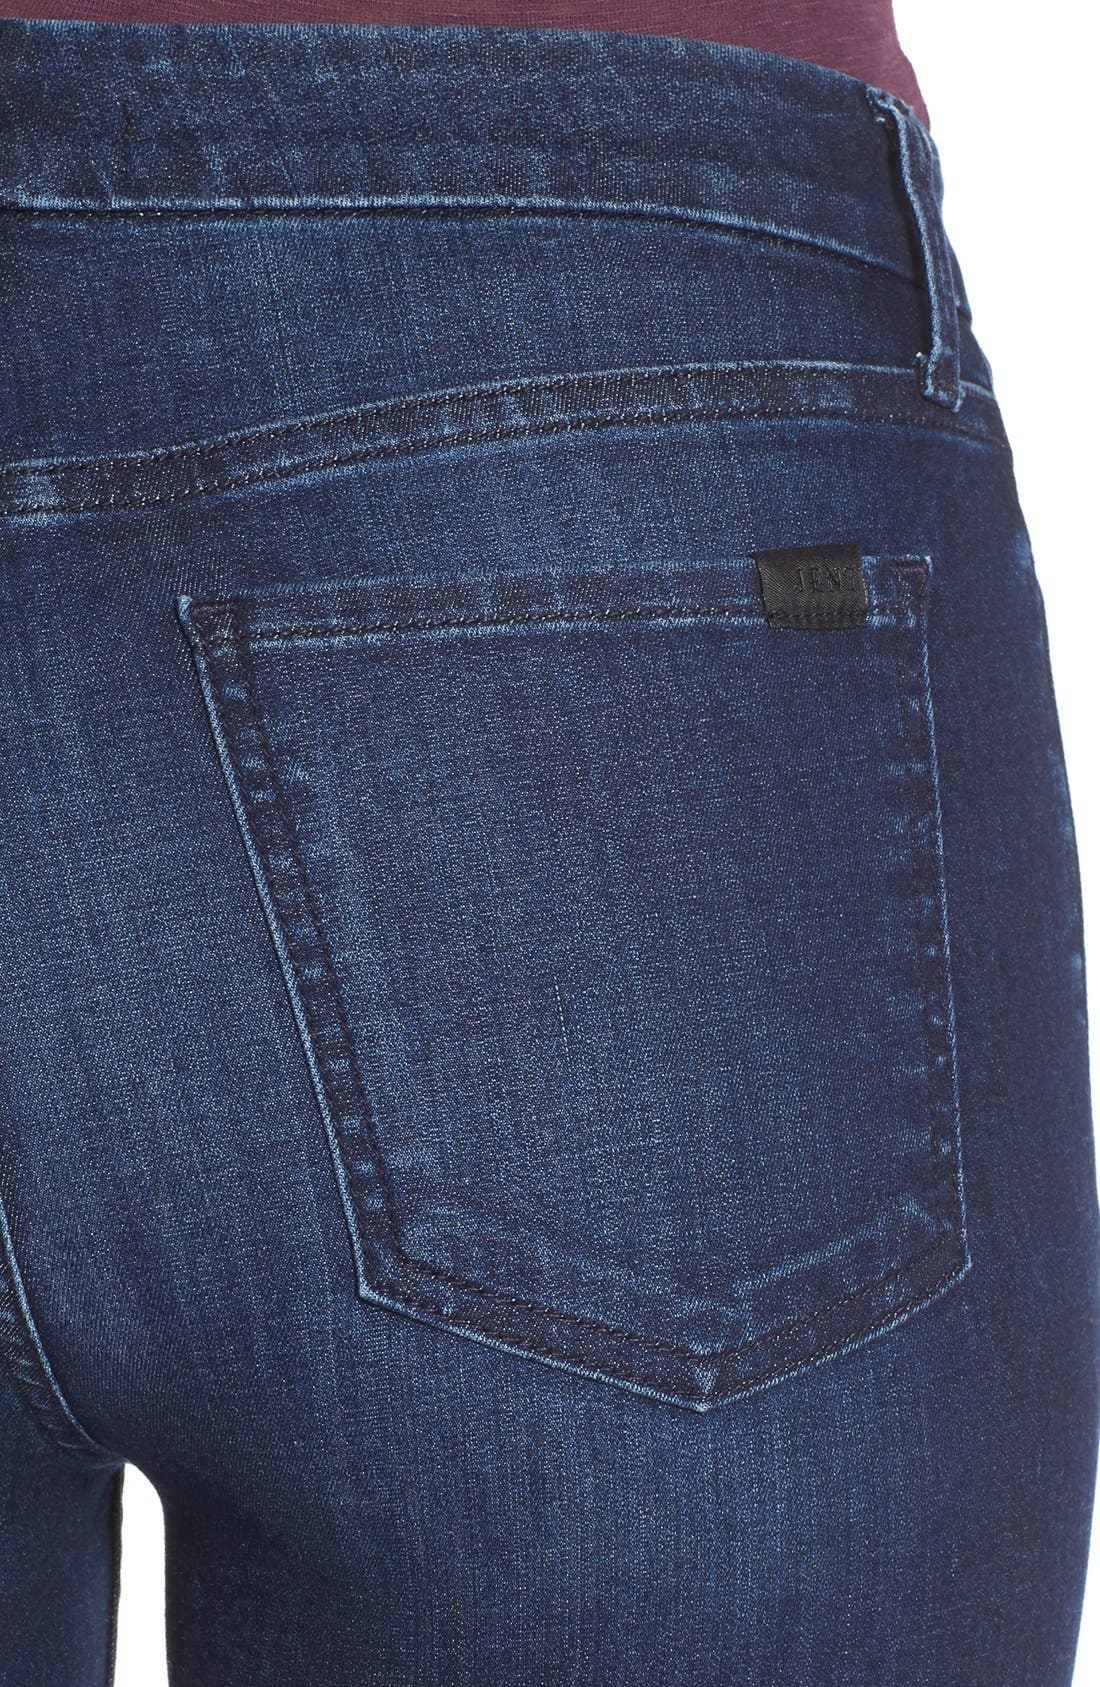 Stretch Skinny Jeans,                             Alternate thumbnail 3, color,                             400